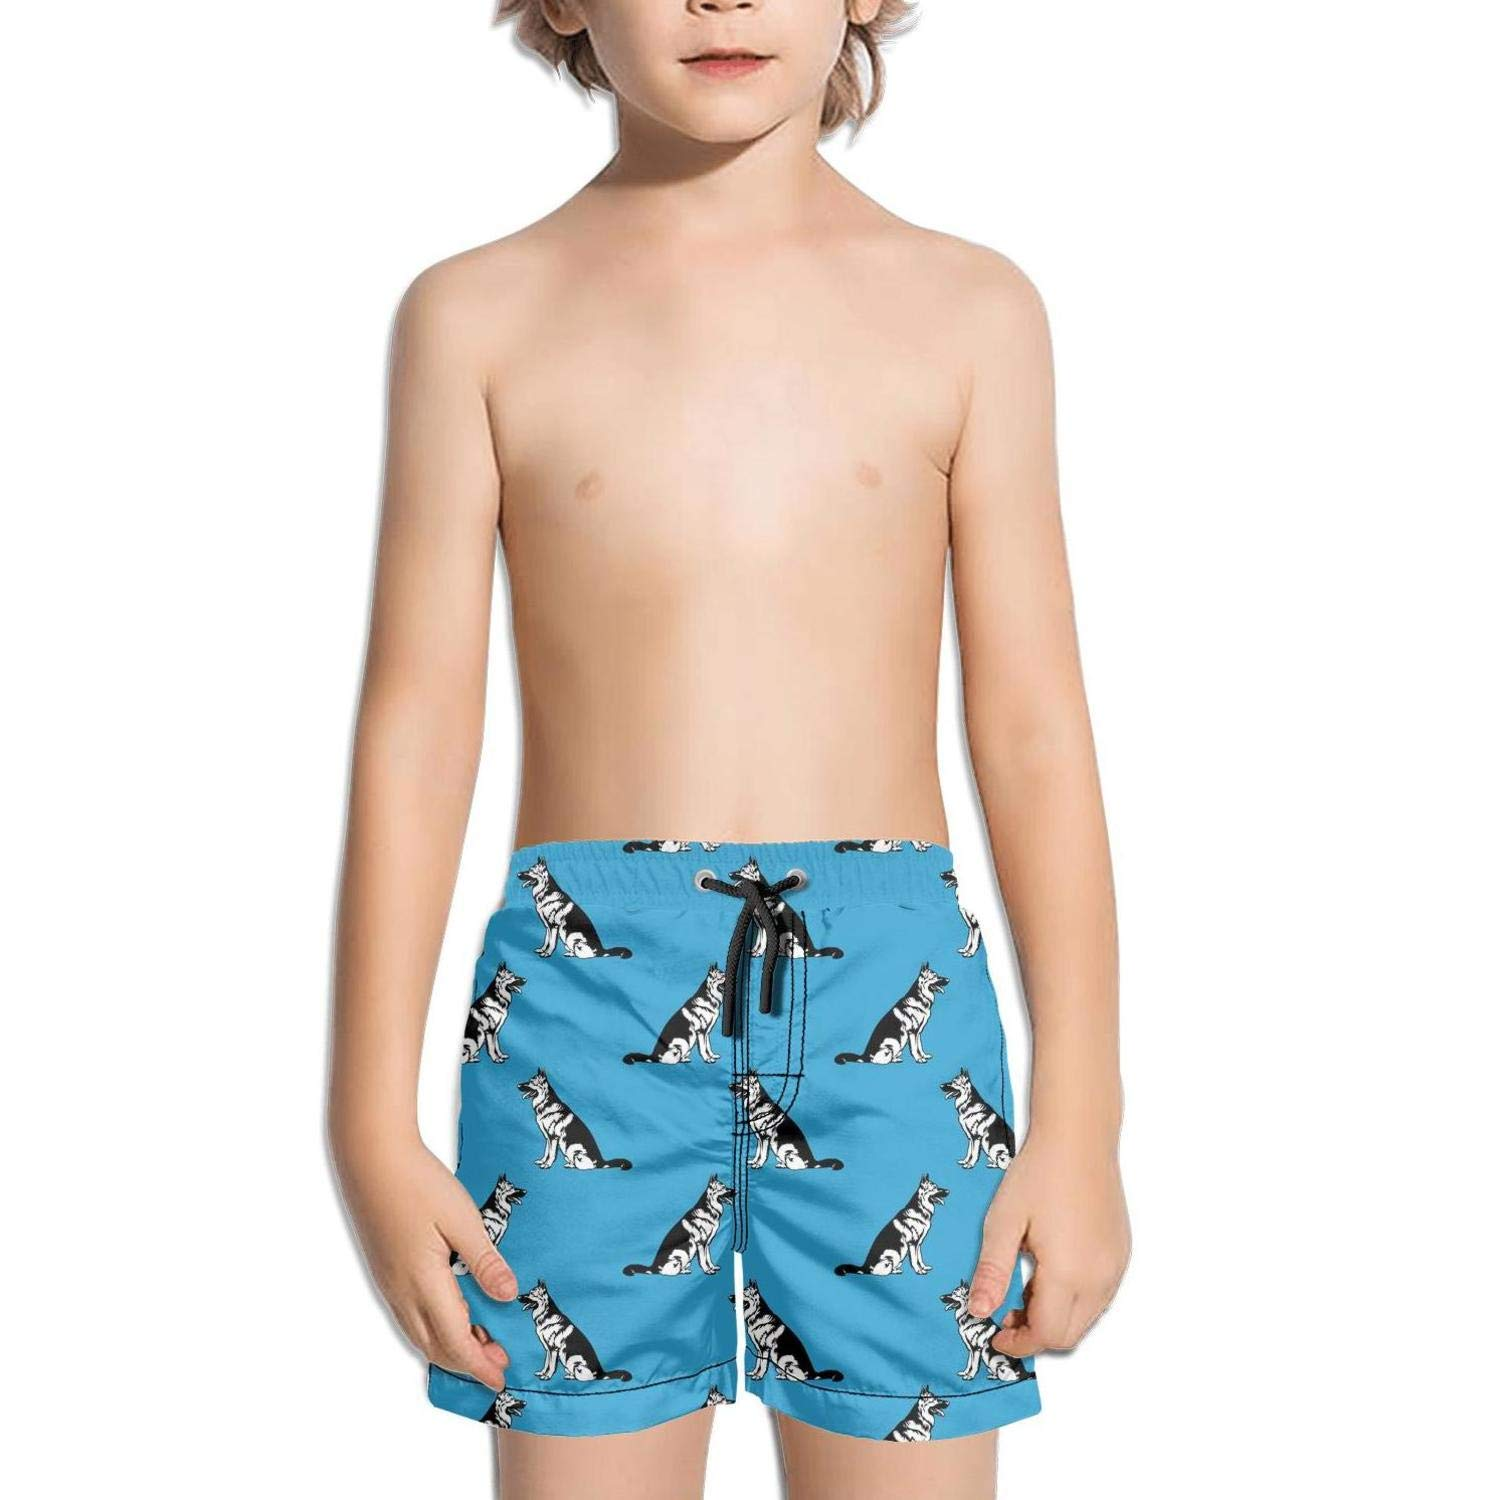 FullBo Love My German Shepherd Blue Pattern Little Boy's Short Swim Trunks Quick Dry Beach Shorts